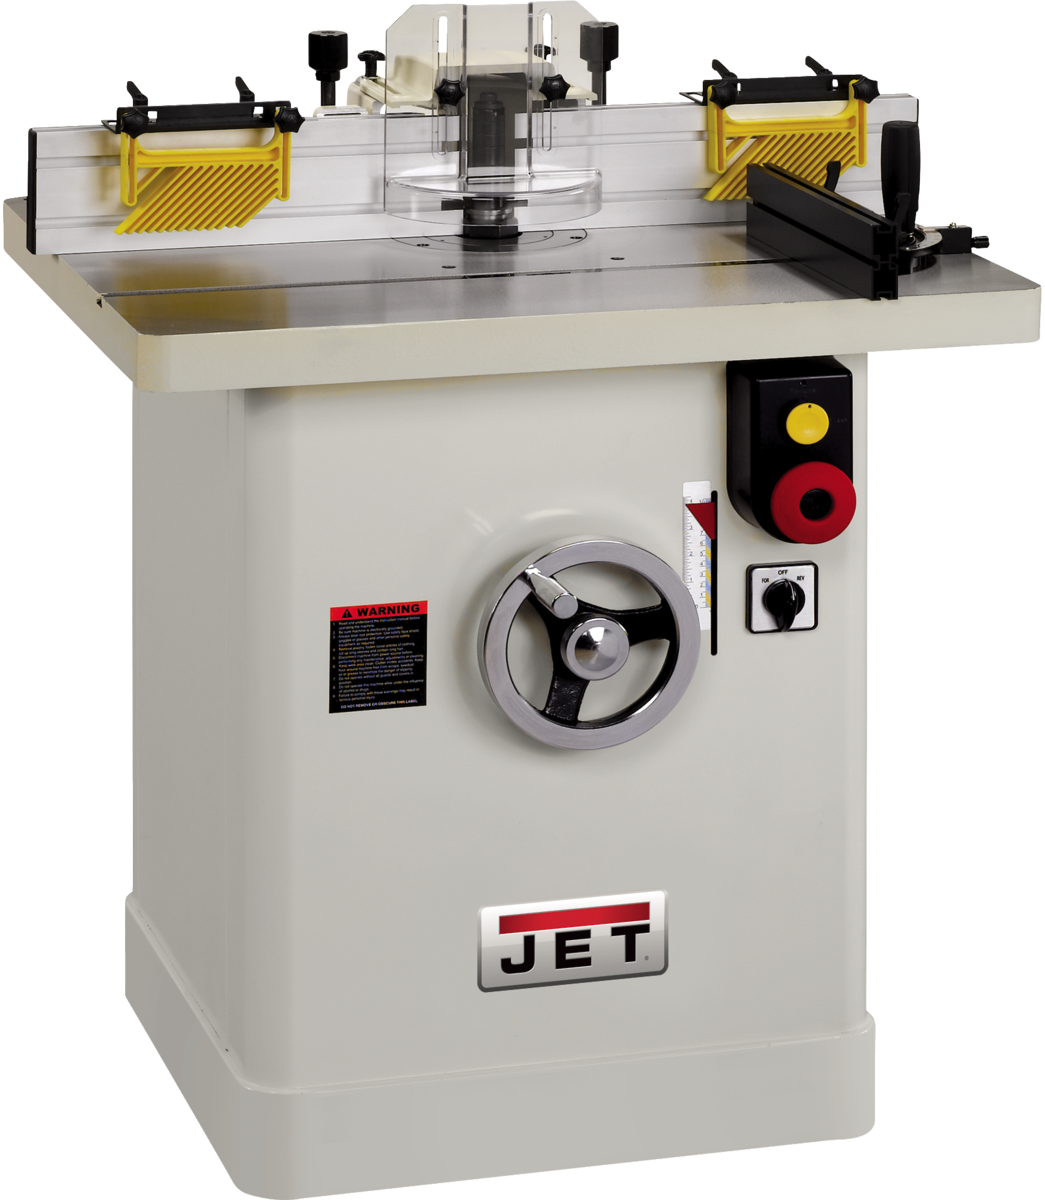 JWS-35X5-1 Industrial Shaper 5HP, 1Ph